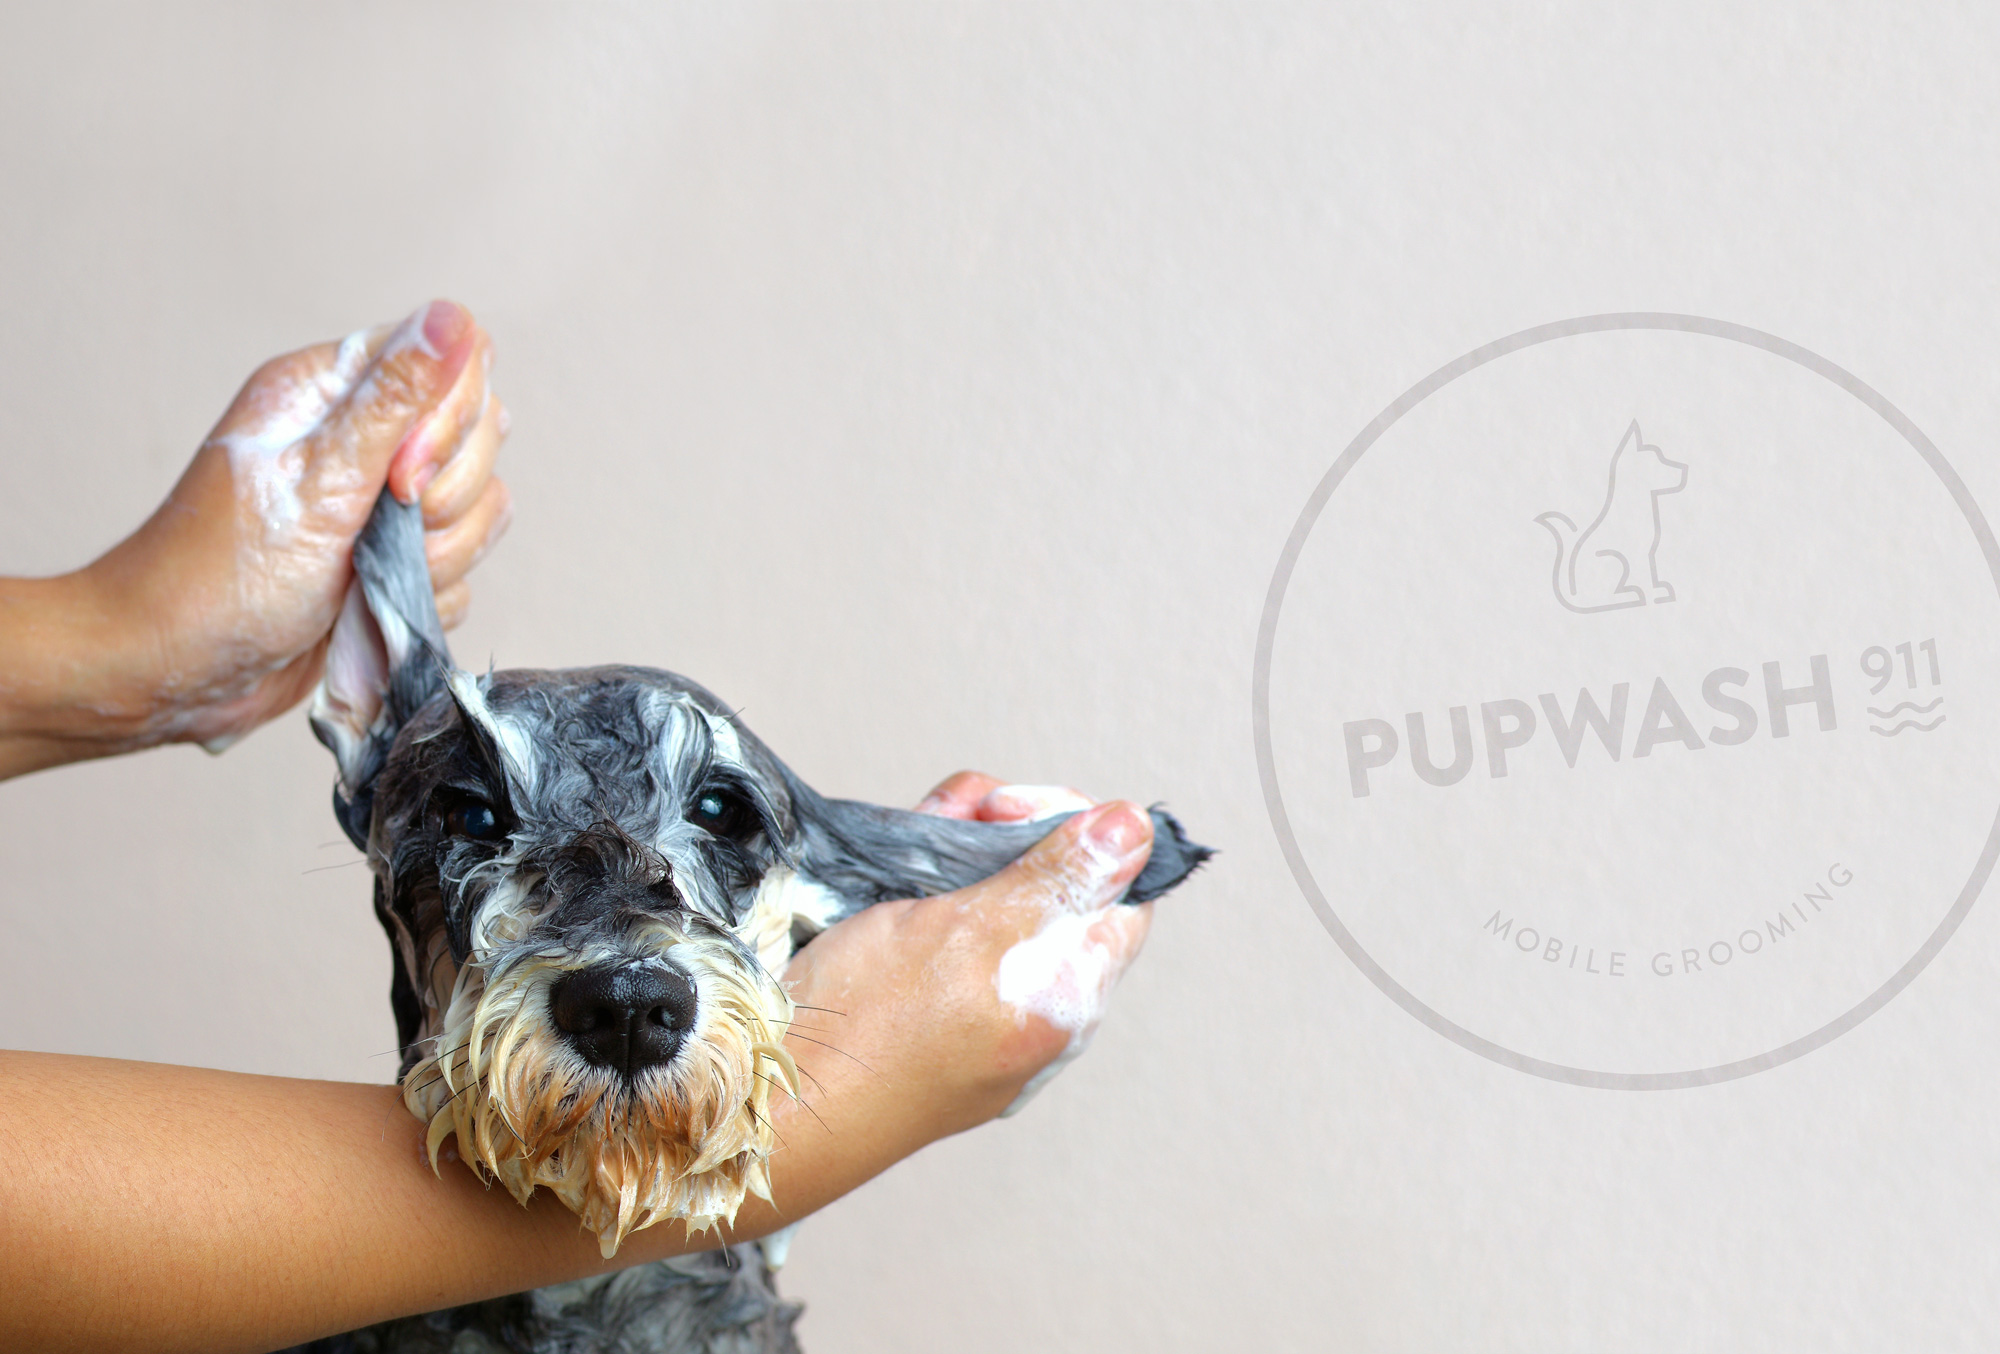 Pupwash911 Brand Identity by Joy Tsai - Creative Work